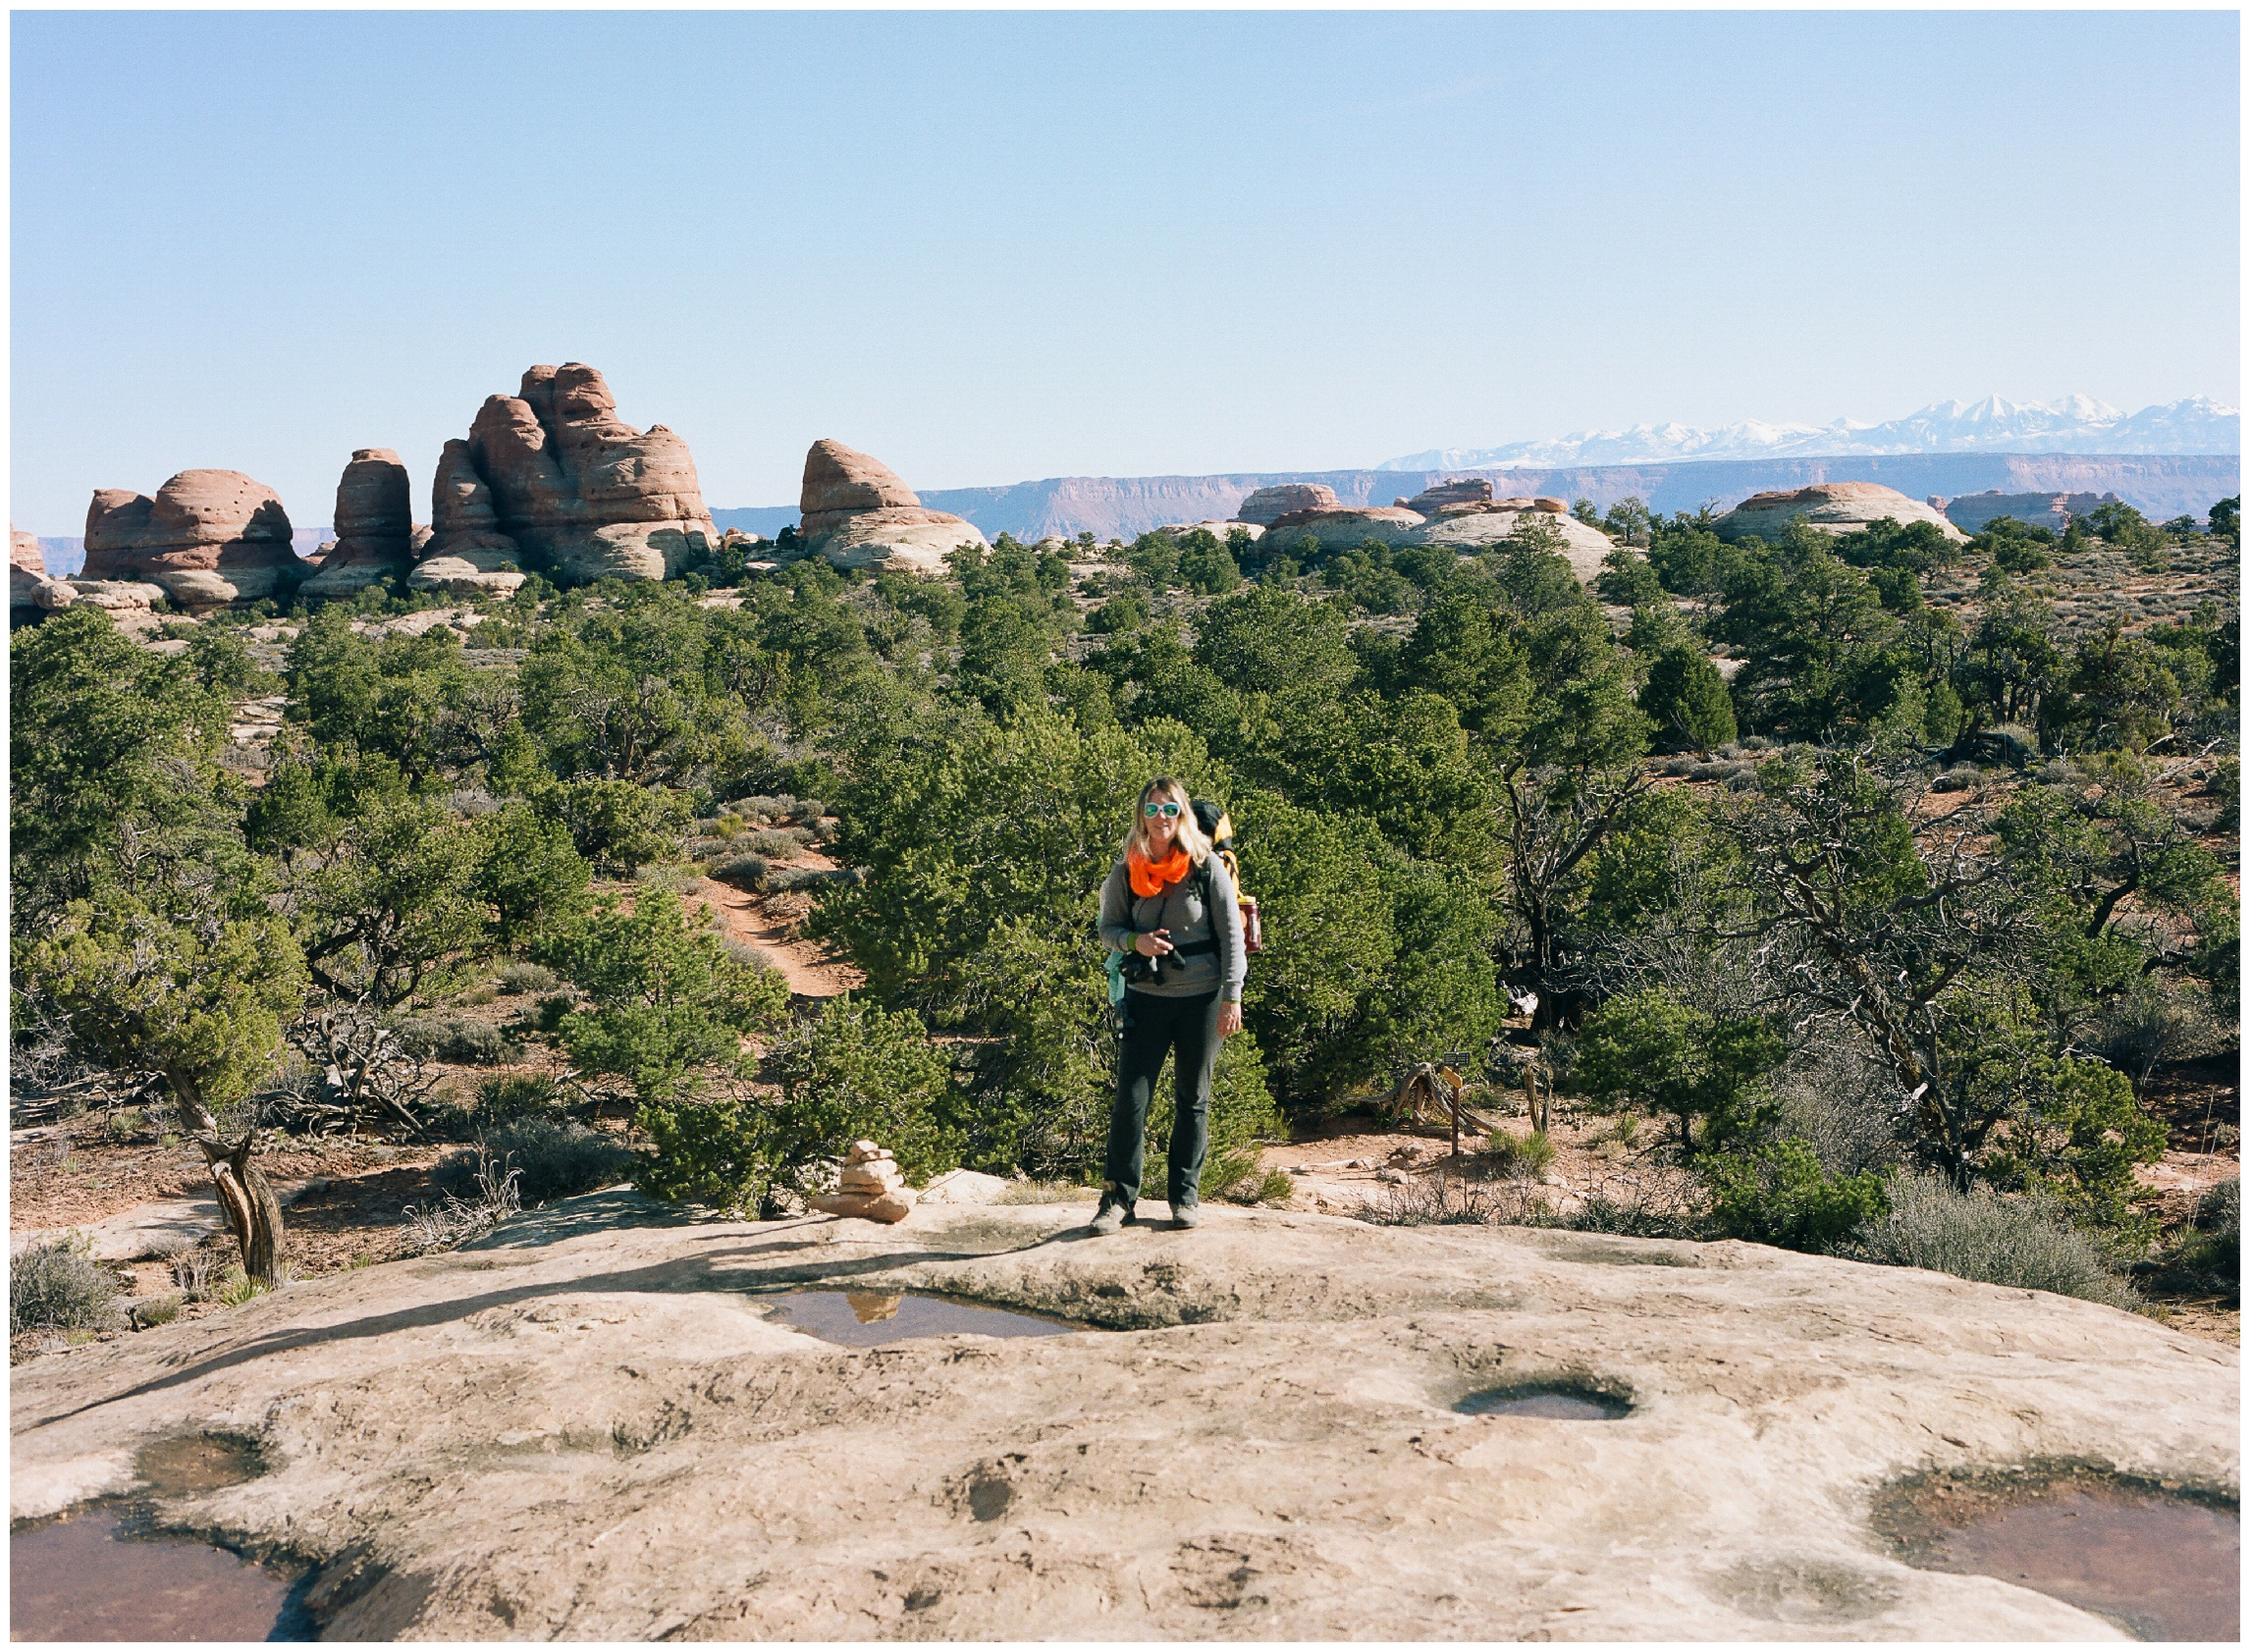 Sonja on the hike out of Elephant Canyon on a warm spring day. La Sal Mountains in the distance. Film photography by Max Salzburg of Sonja K Photography.